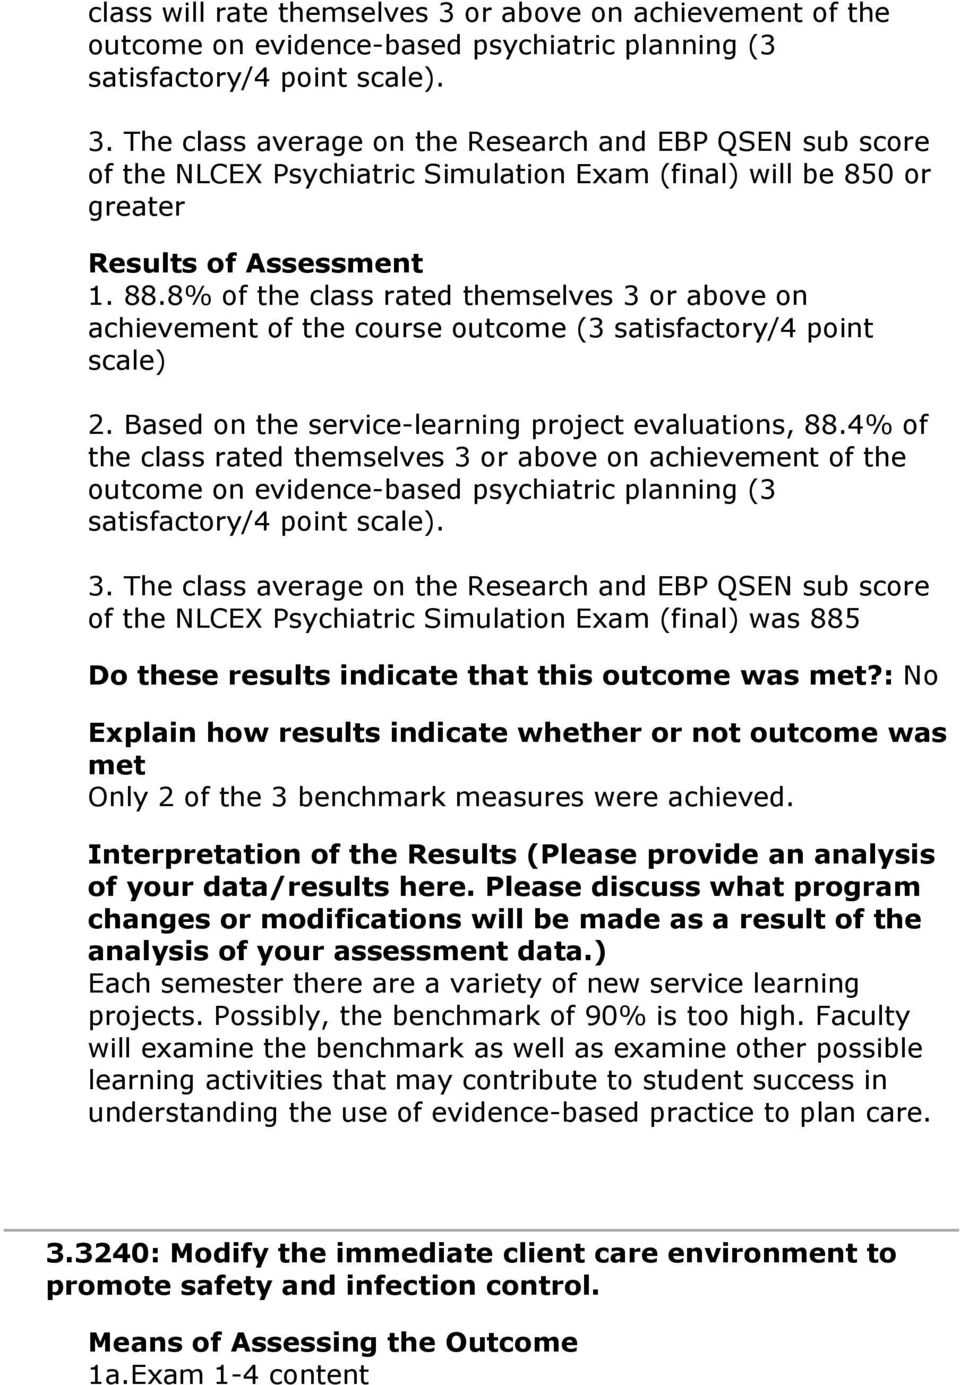 4% of the class rated themselves 3 or above on achievement of the outcome on evidence-based psychiatric planning (3 satisfactory/4 point scale). 3. The class average on the Research and EBP QSEN sub score of the NLCEX Psychiatric Simulation Exam (final) was 885 Do these results indicate that this outcome was?